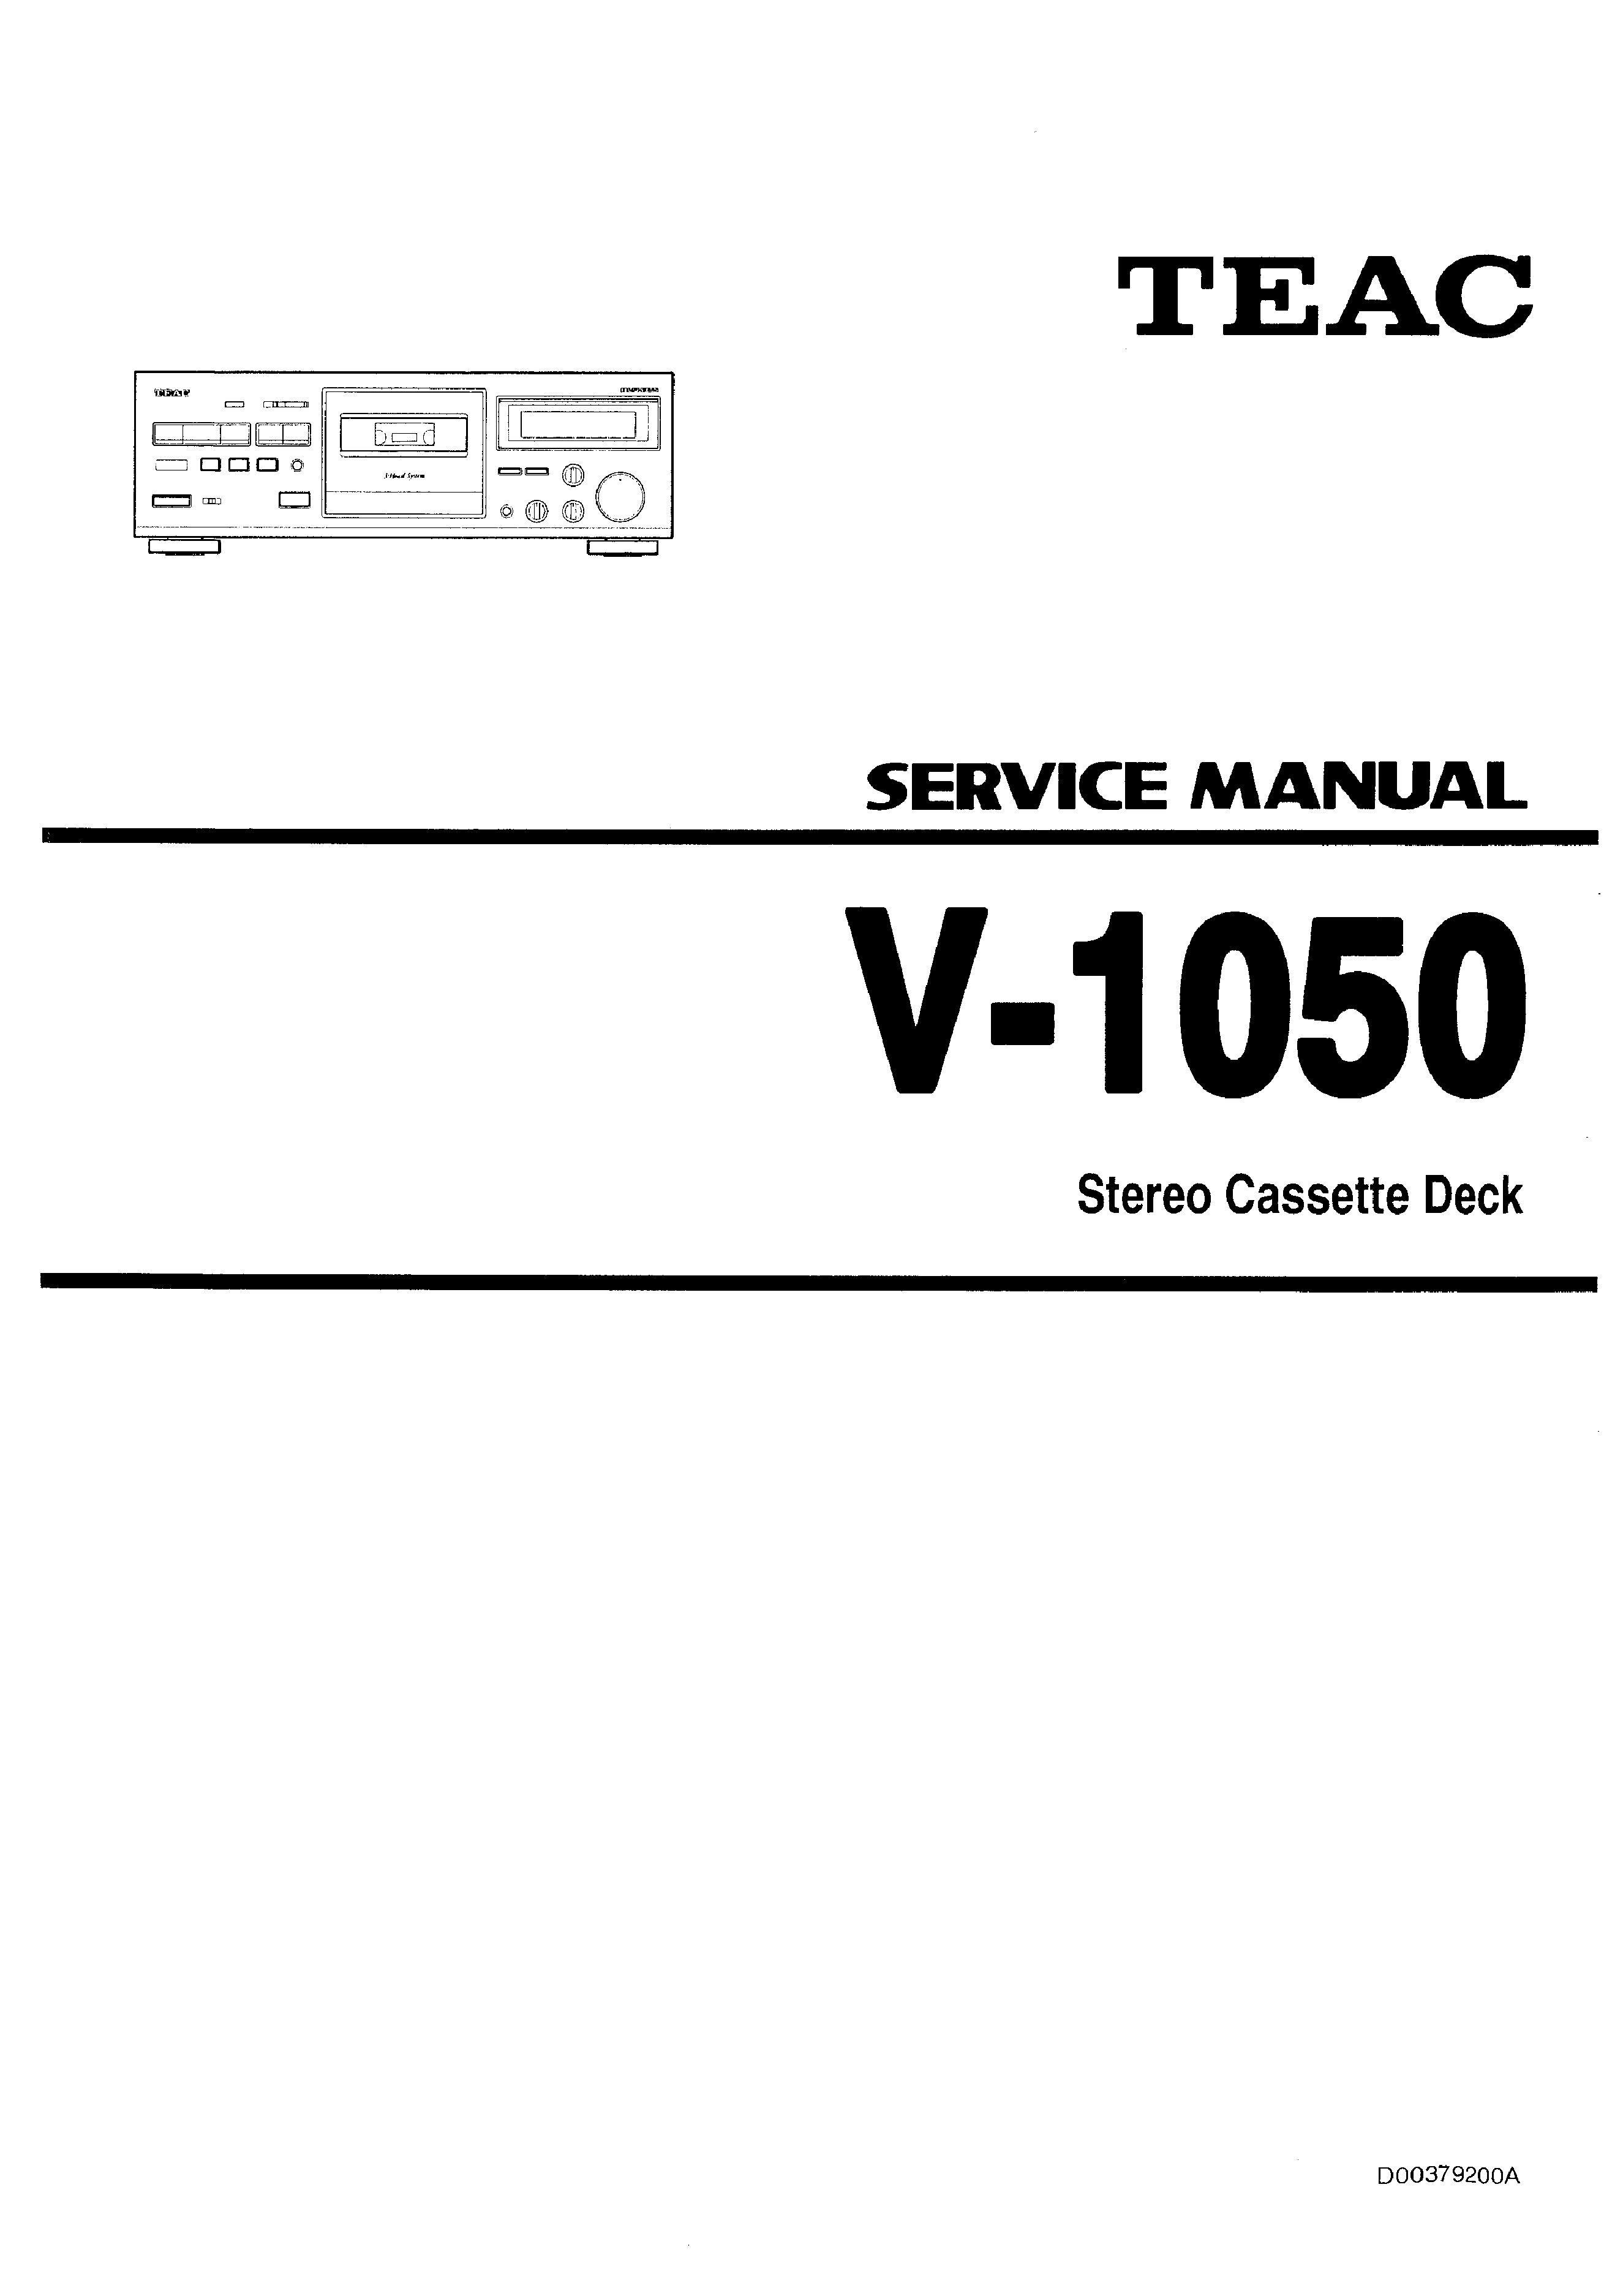 TEAC V-1050 - Service Manual Immediate Download